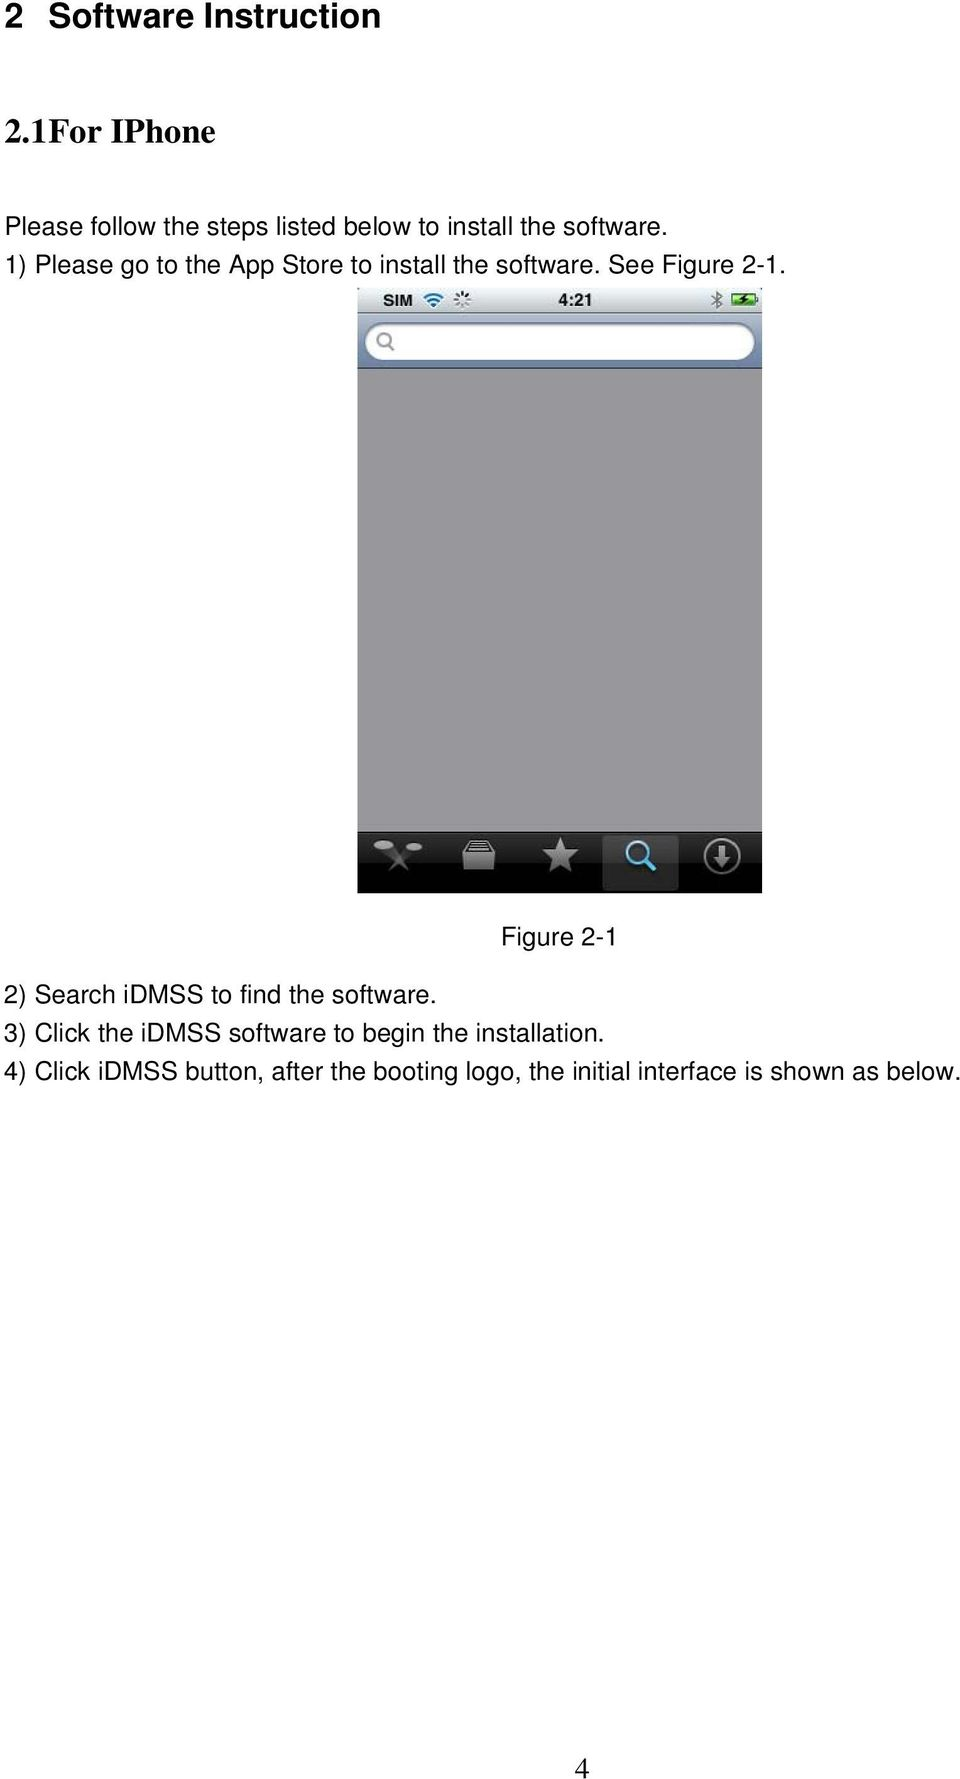 1) Please go to the App Store to install the software. See Figure 2-1.